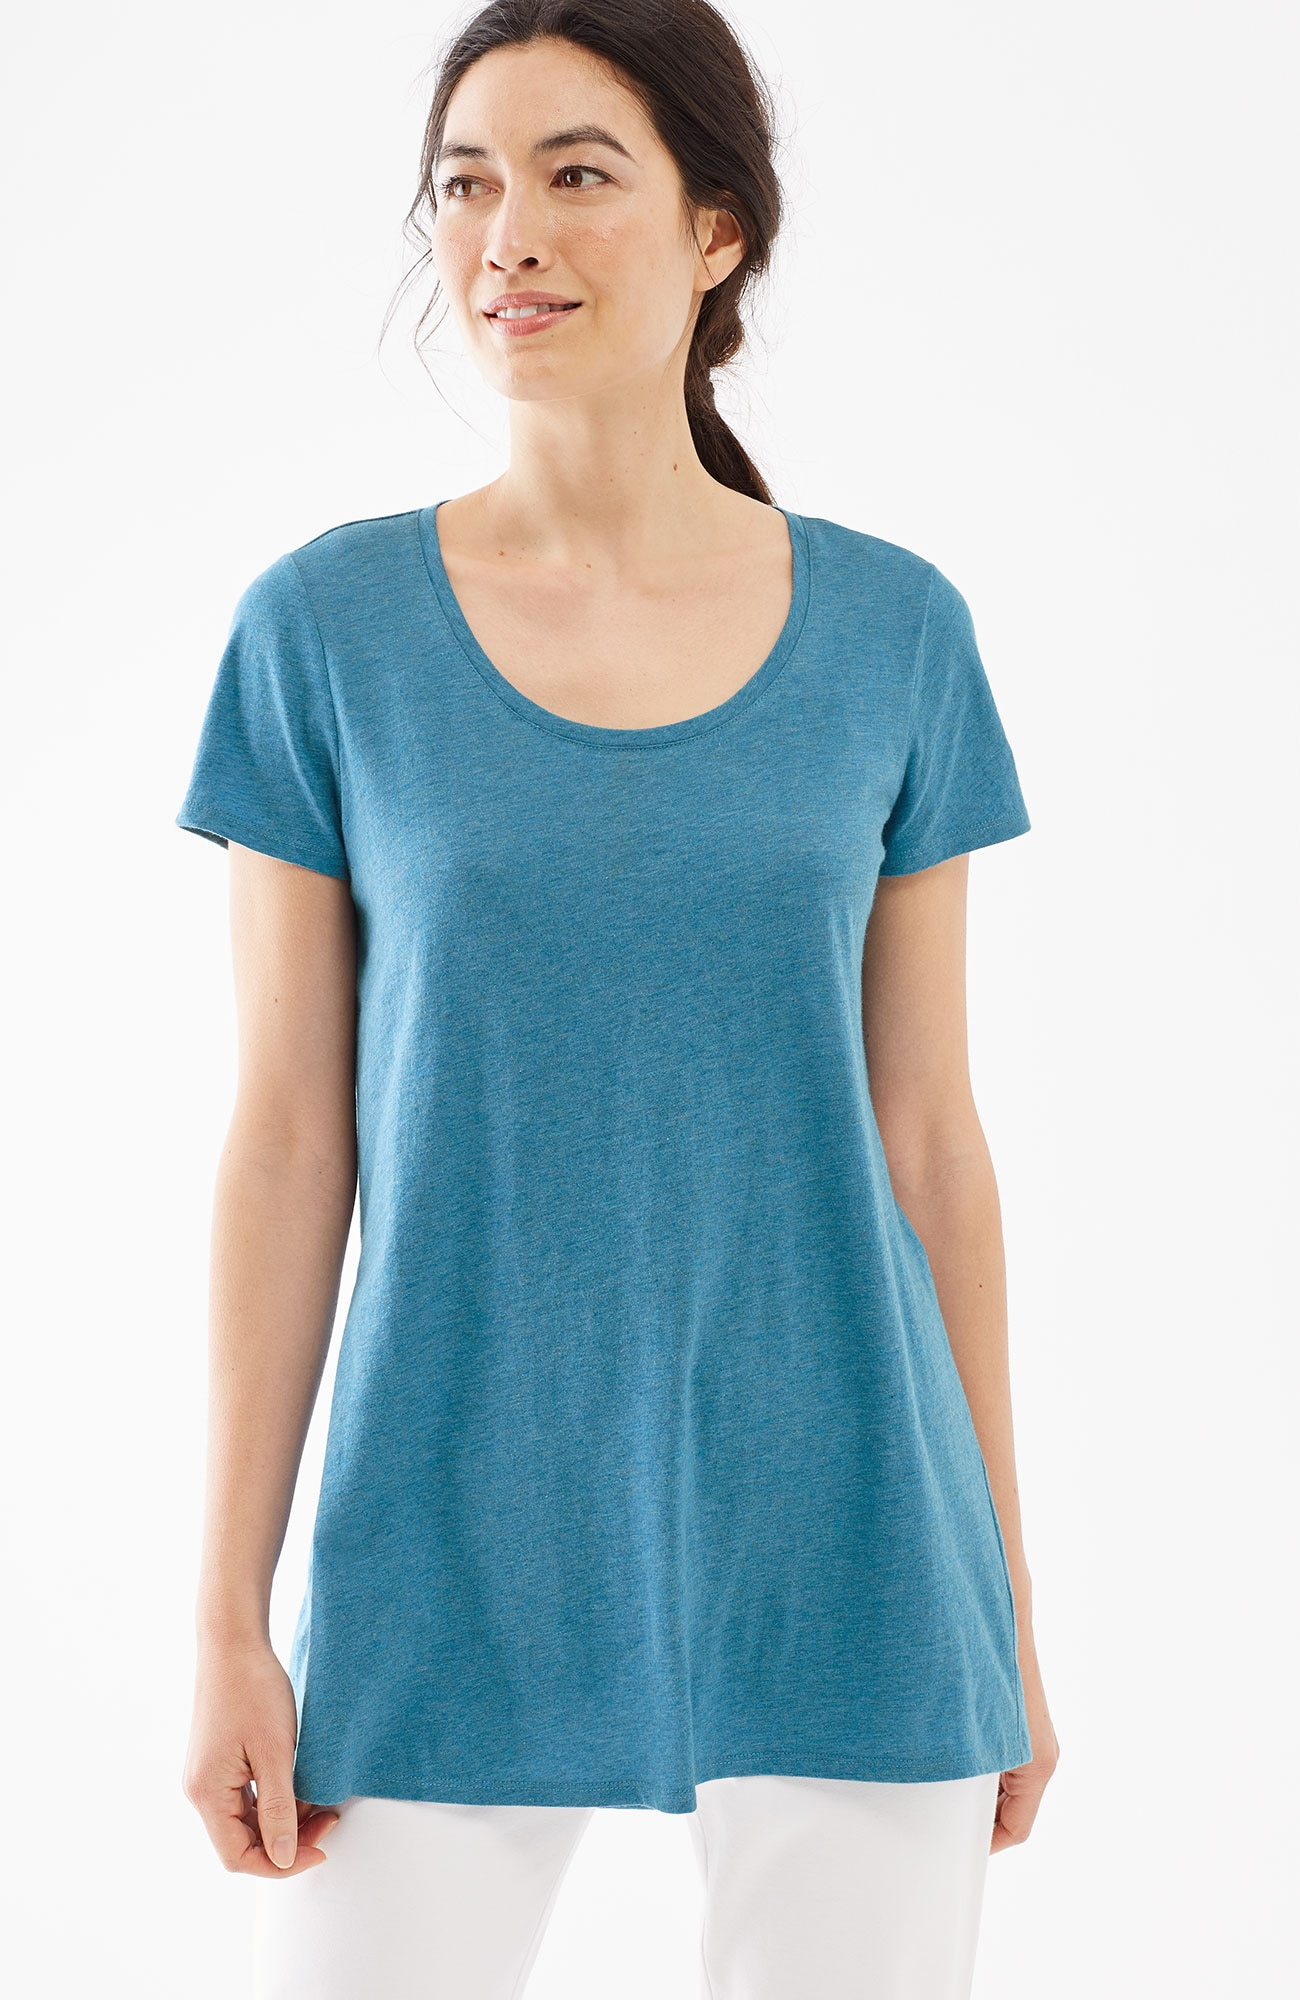 Pure Jill scoop-neck elliptical tee